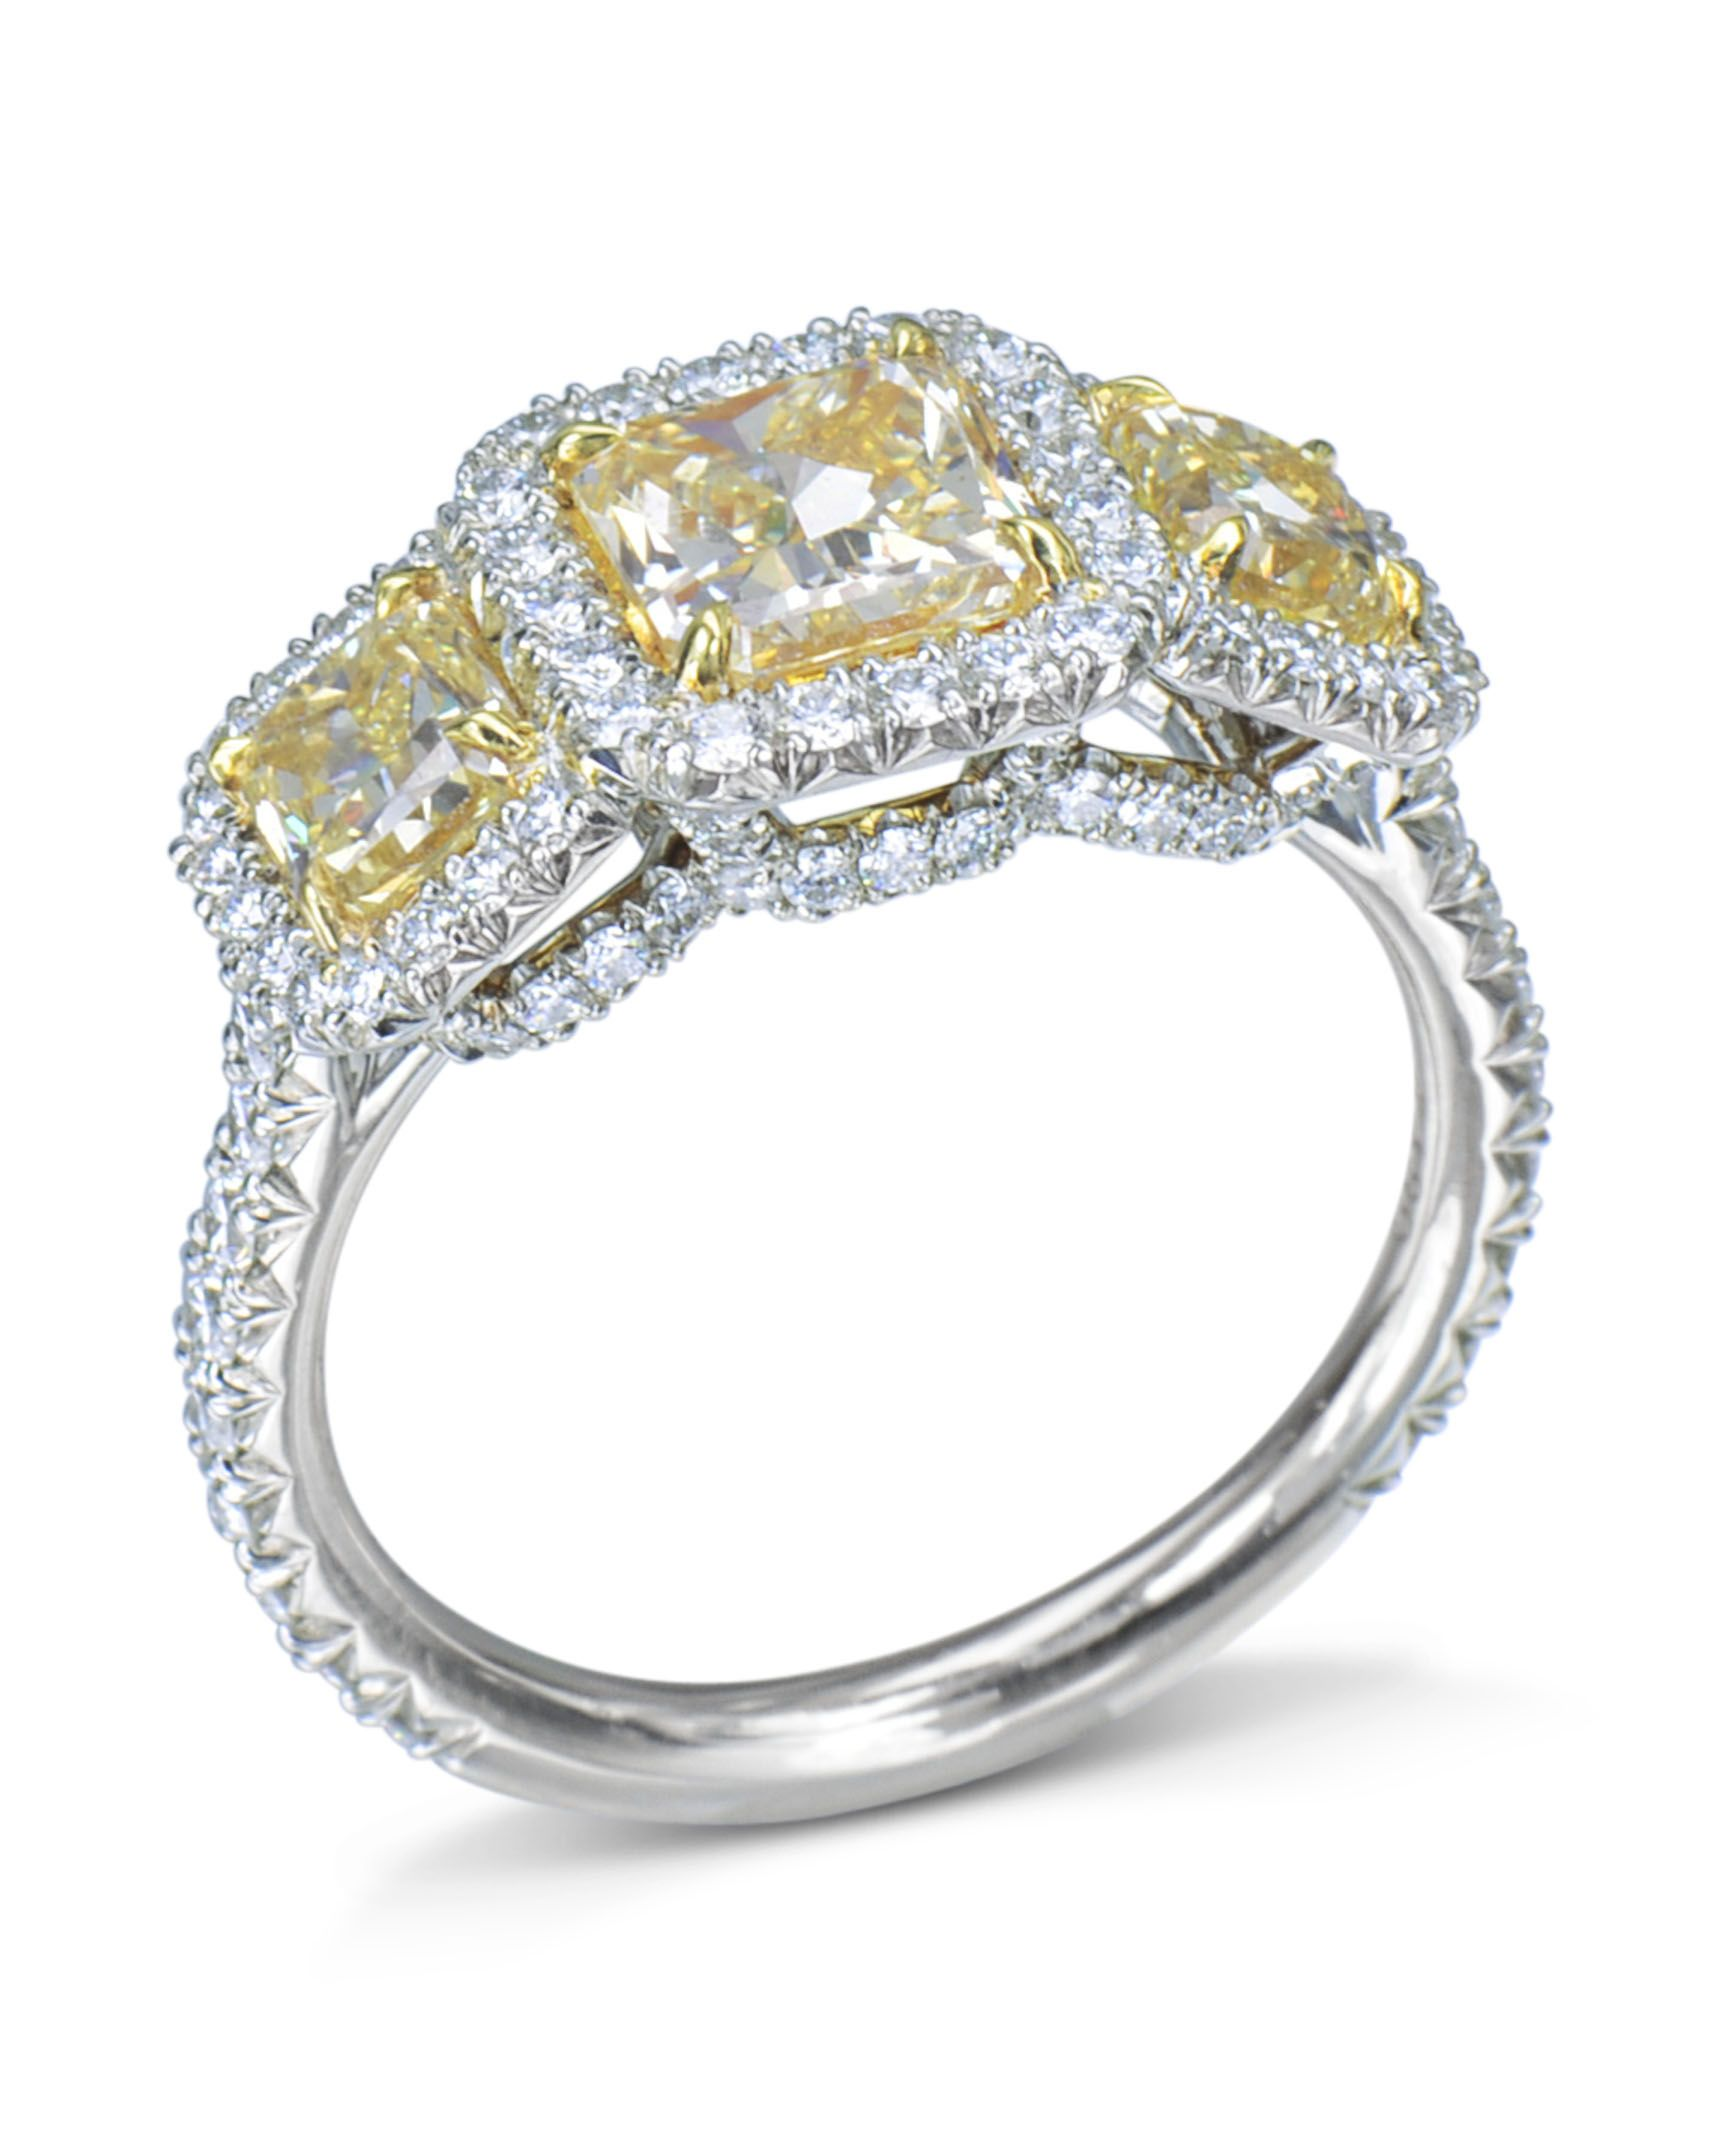 Certified 4ct Oval Cut Yellow Diamond Double Halo Engagement Ring 14K White Gold